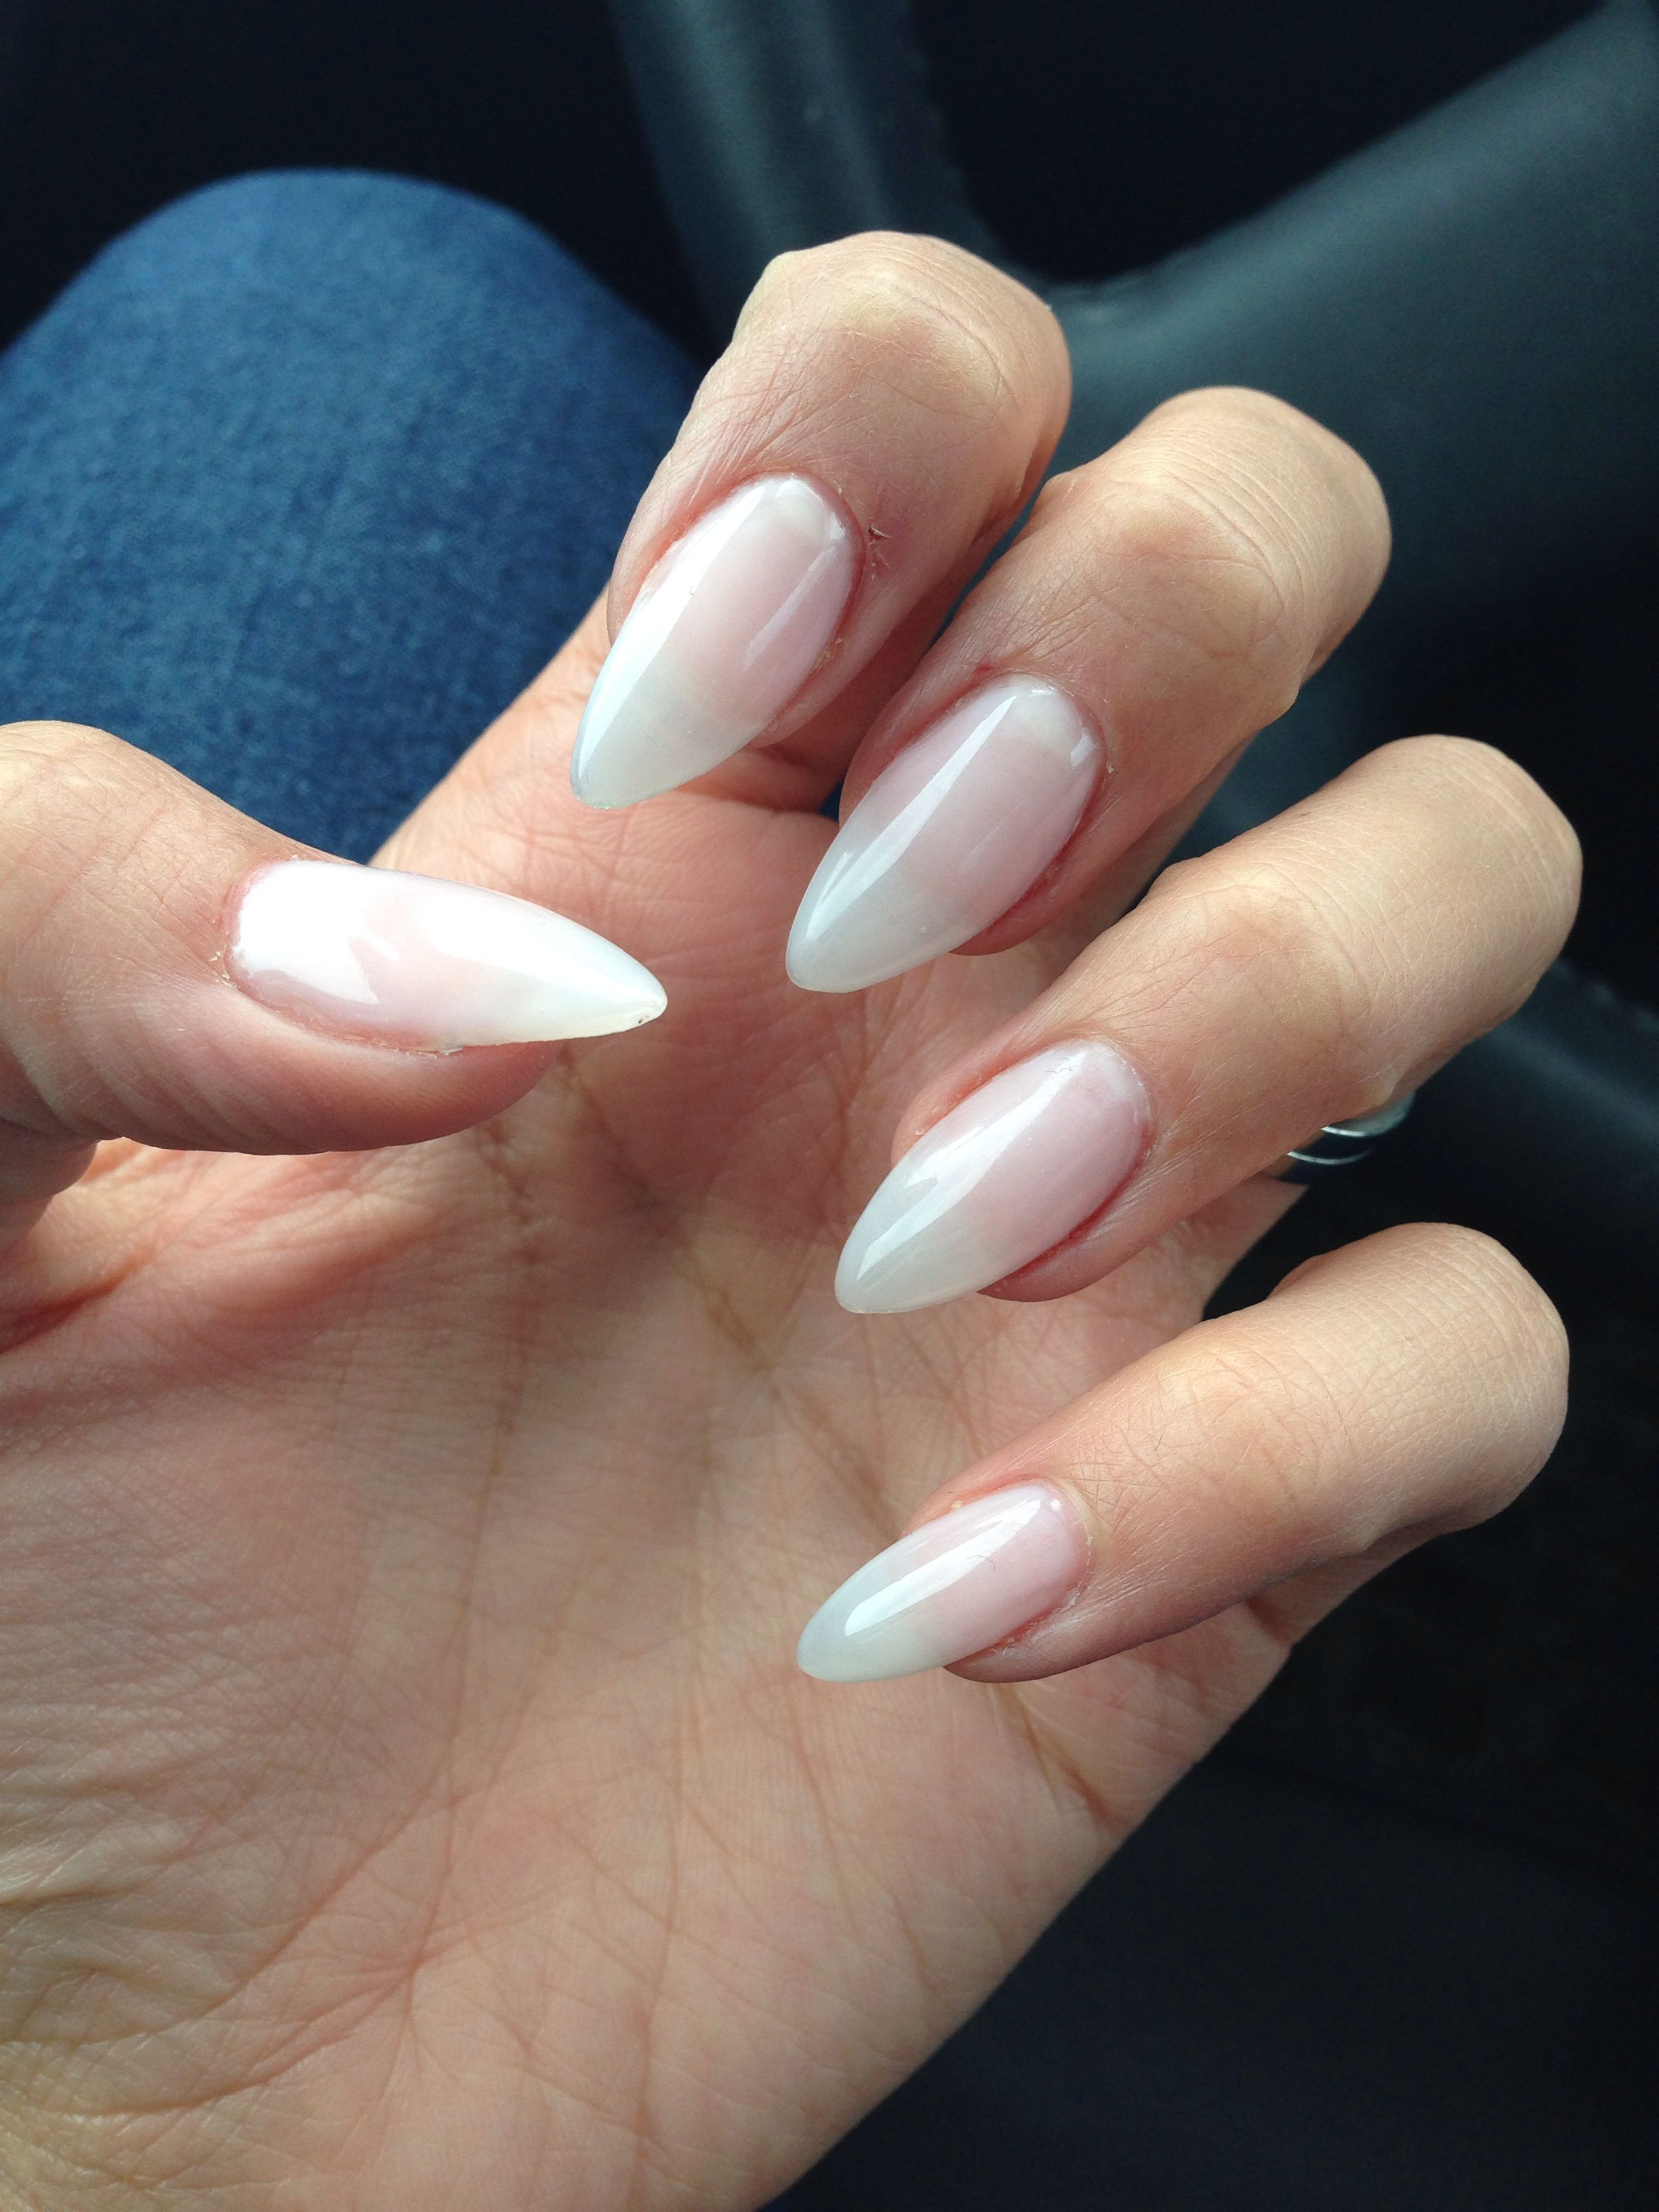 Natural looking gel almond nails | nails | Pinterest | Almond nails ...